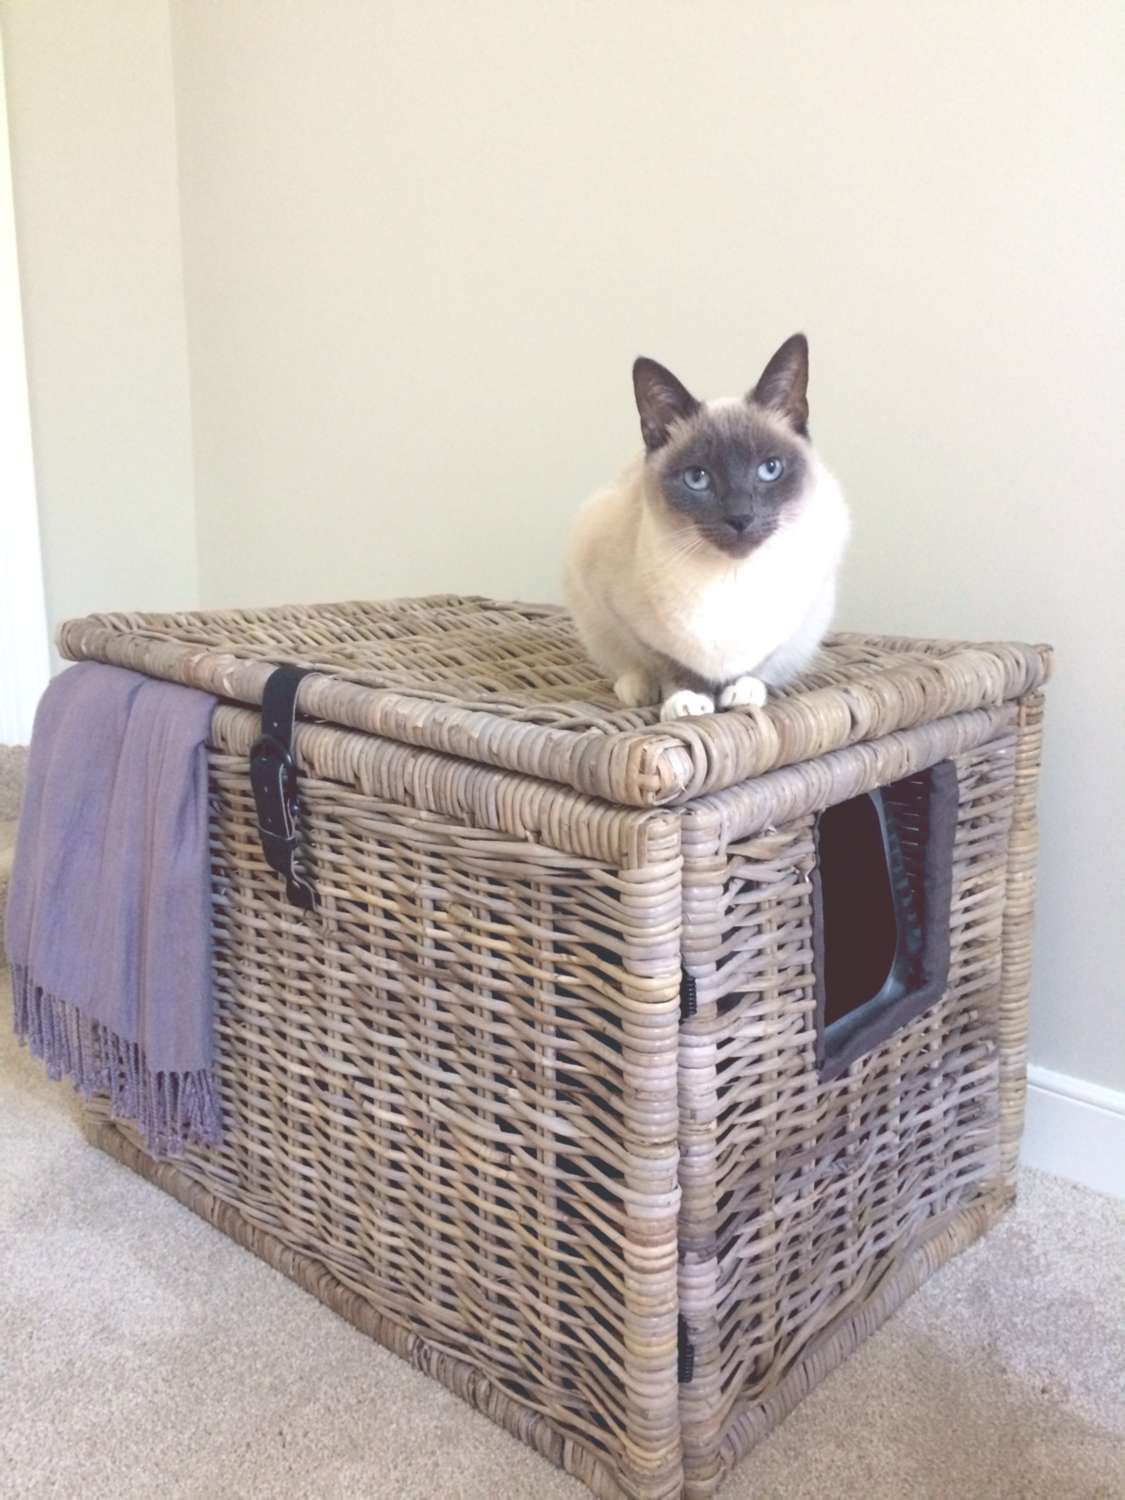 17 clever ways to hide the litter box in 2020 cat litter